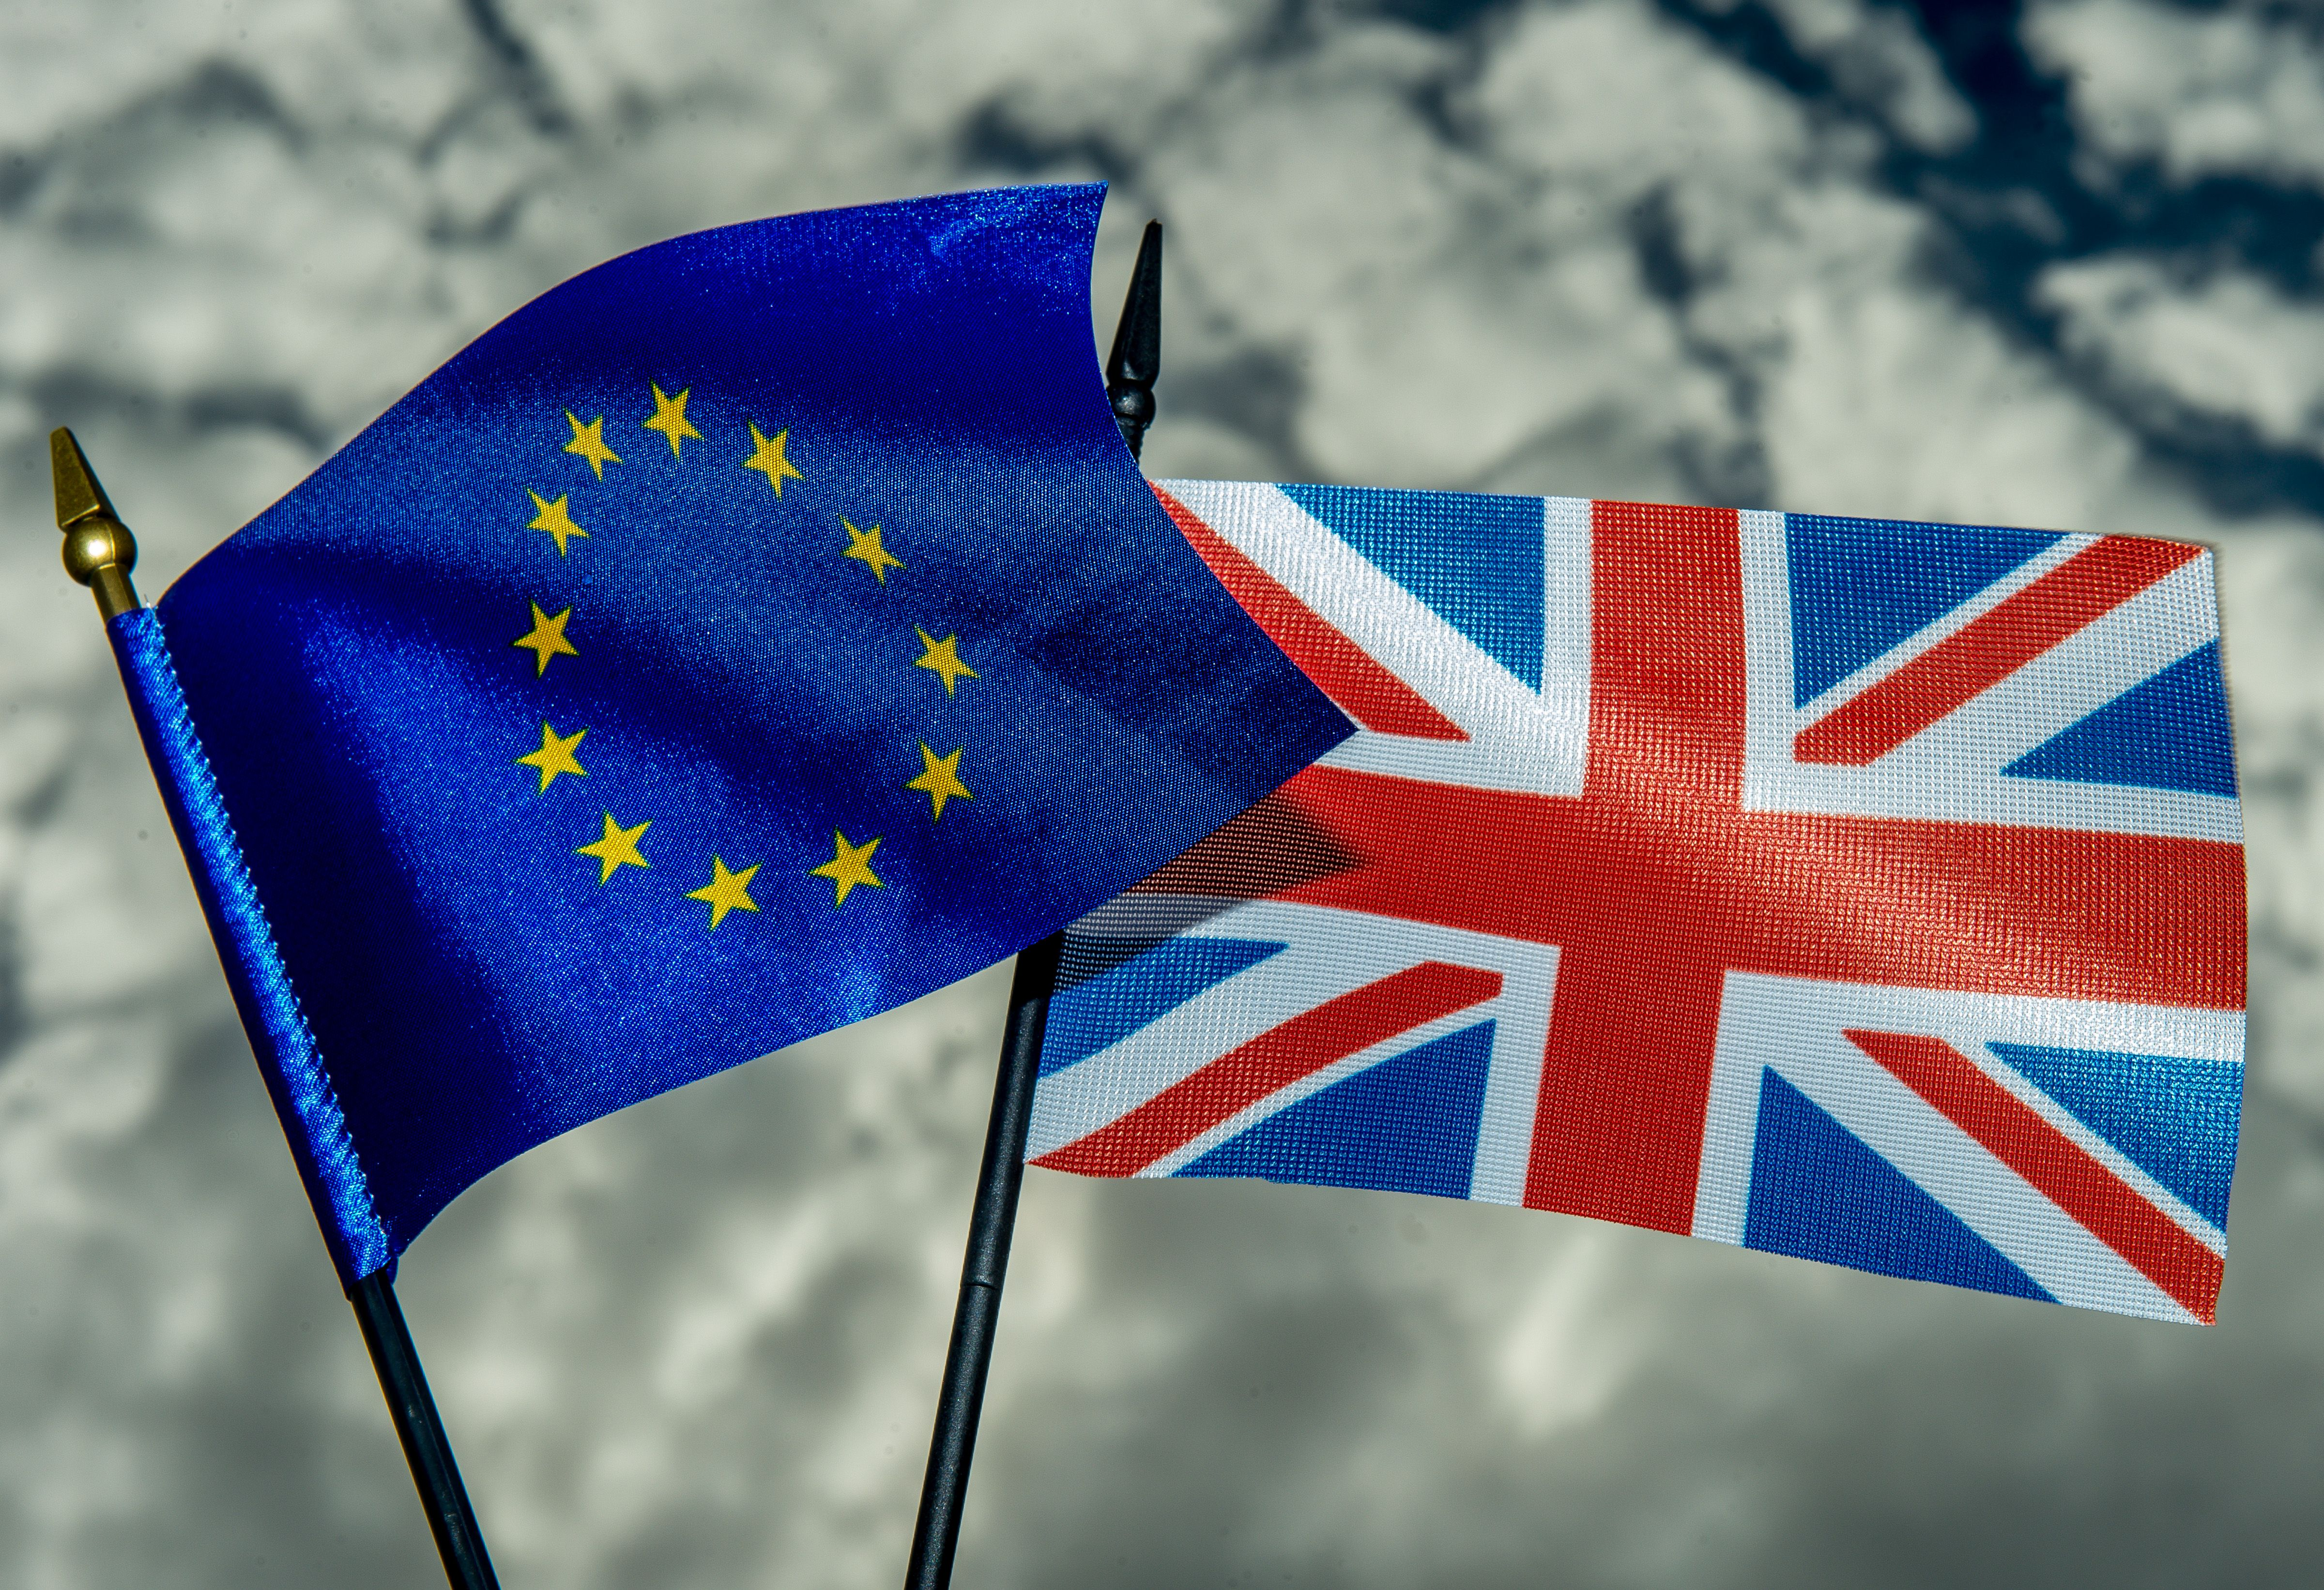 """This photo illustration created on May 20, 2016 in Lille shows the flags of the European Union and the United Kingdom. On June 23, 2016 Great Britain will hold a referendum on whether or not the United Kingdom will remain within the European Union, often referred to as """"Brexit."""" Group of Seven finance ministers on May 21 warned of the risks from a """"shock"""" to the world economy if Britain votes to leave the European Union next month. / AFP / PHILIPPE HUGUEN (Photo credit should read PHILIPPE HUGUEN/AFP/Getty Images)"""